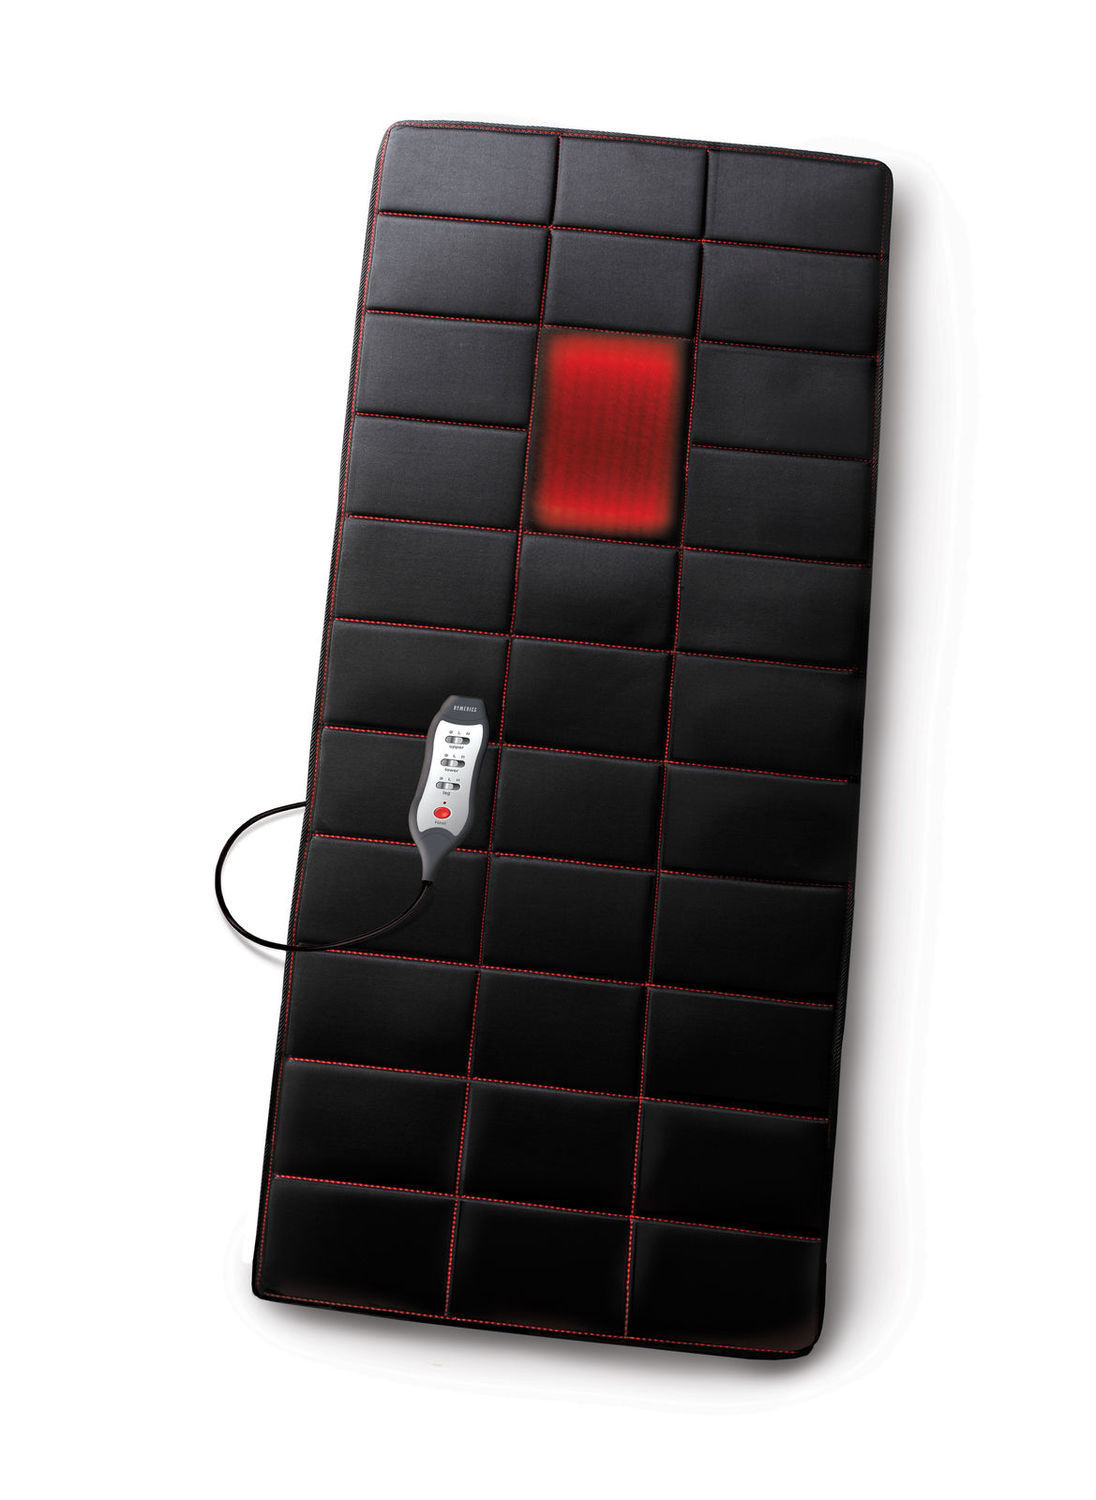 HoMedics Full Body Heated Vibration Massage Mat MMP-250-Gb